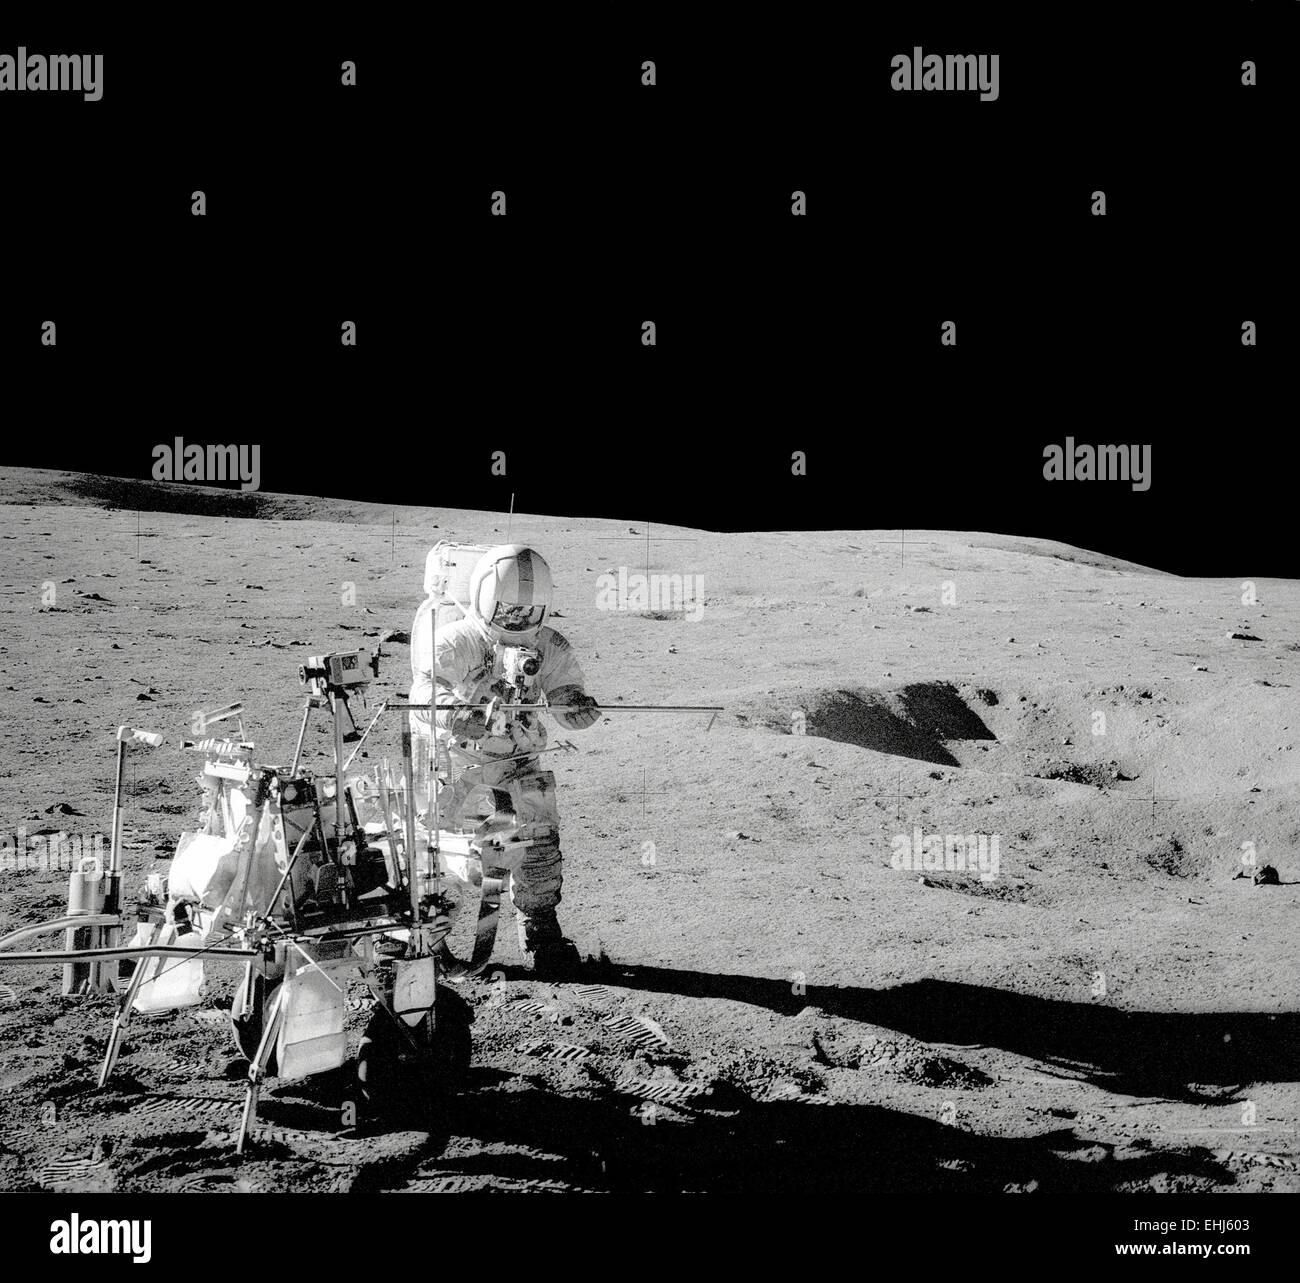 Astronaut Captain Alan Bartlett Shepard on the moon during the Apollo 14 mission - Stock Image